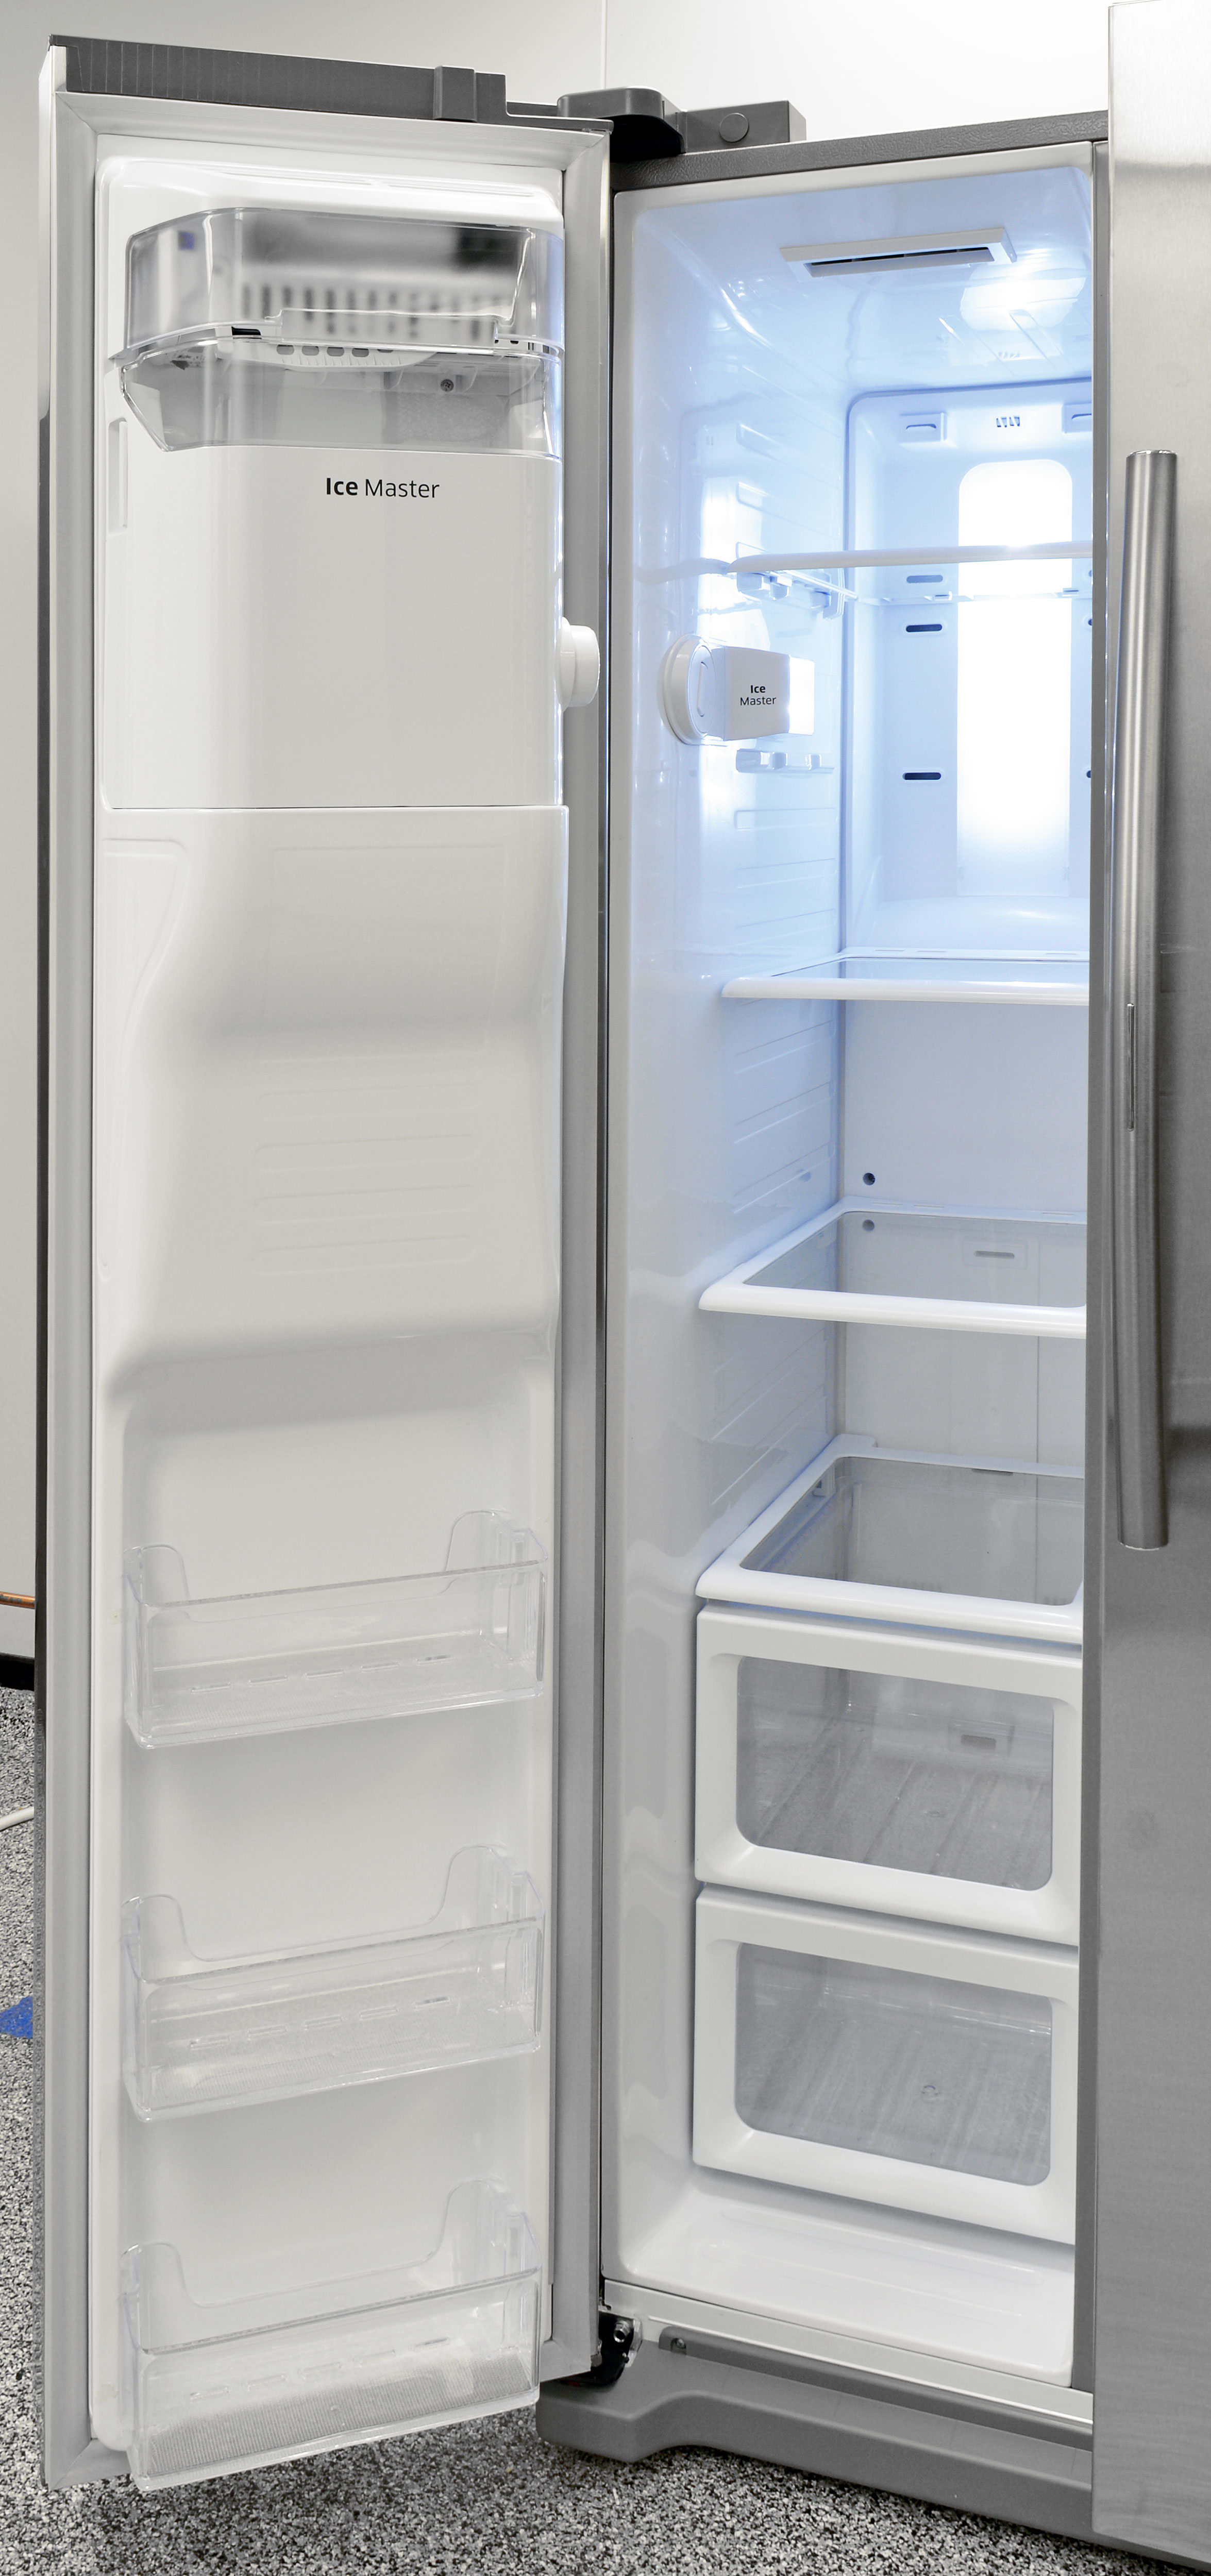 The Samsung RH25H5611SR's freezer section uses a basic mix of drawers and shelves.